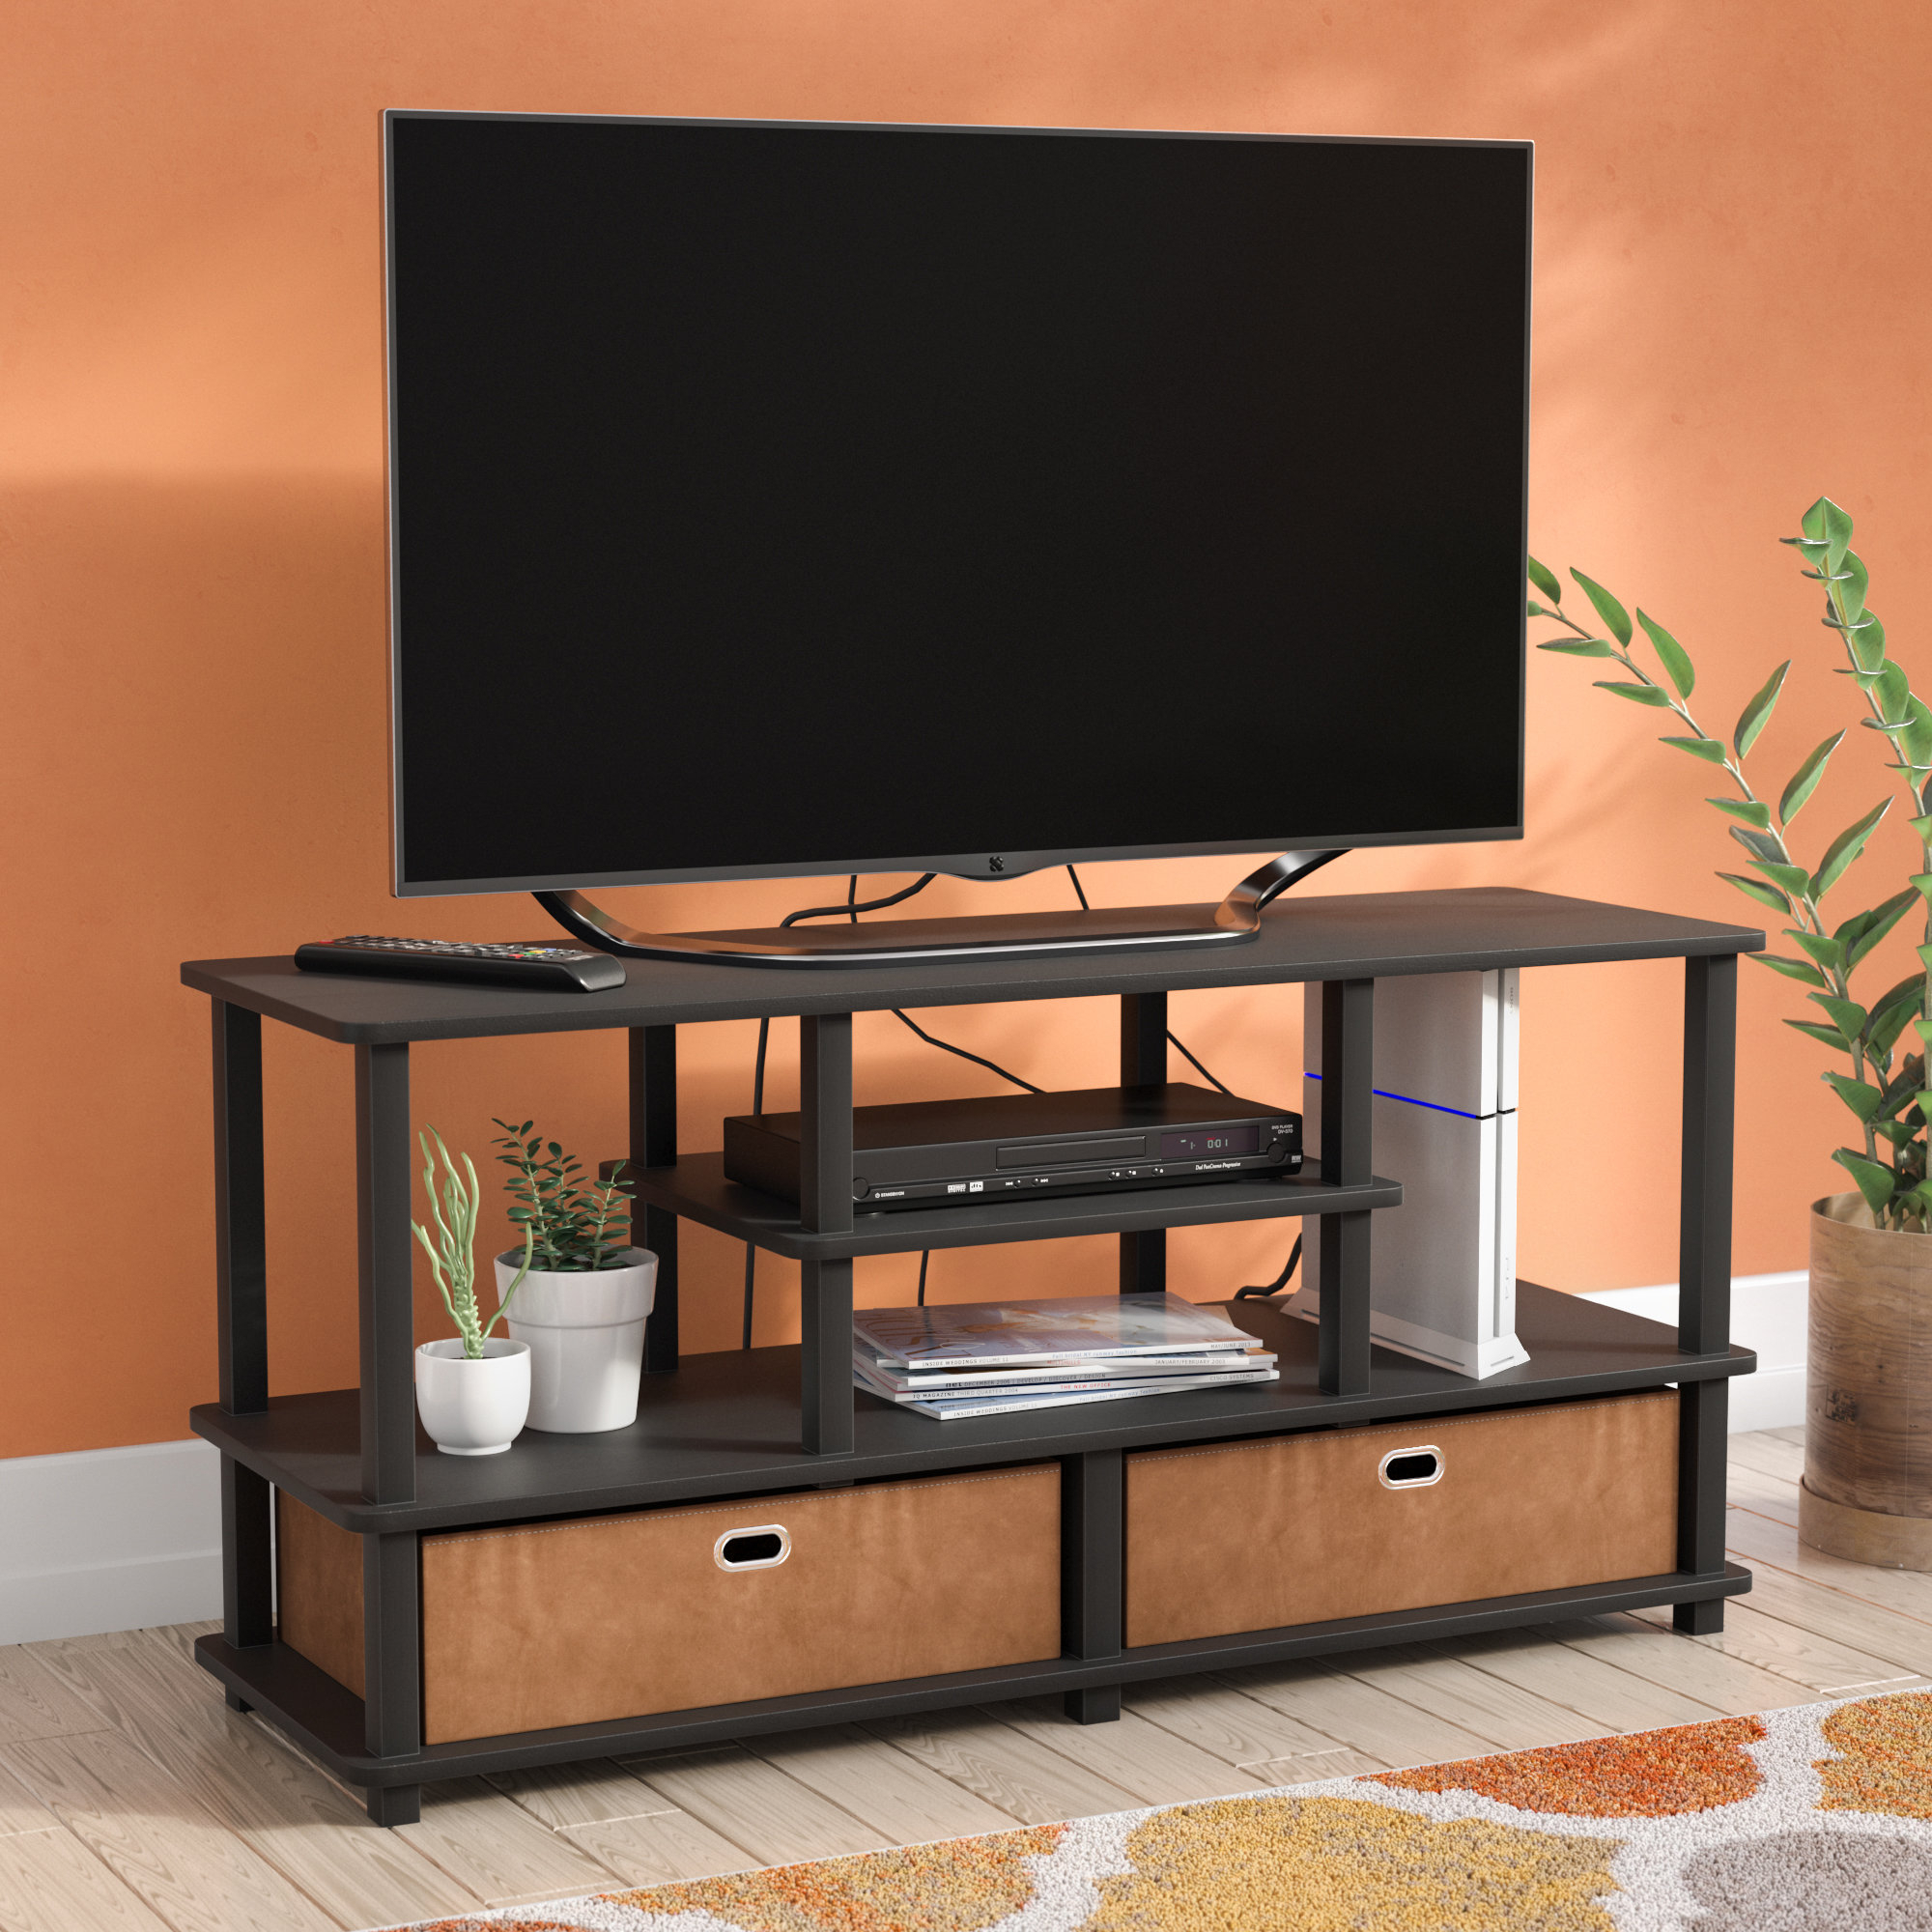 Tv Stands Sale You'll Love   Wayfair With Regard To Laurent 50 Inch Tv Stands (View 8 of 30)